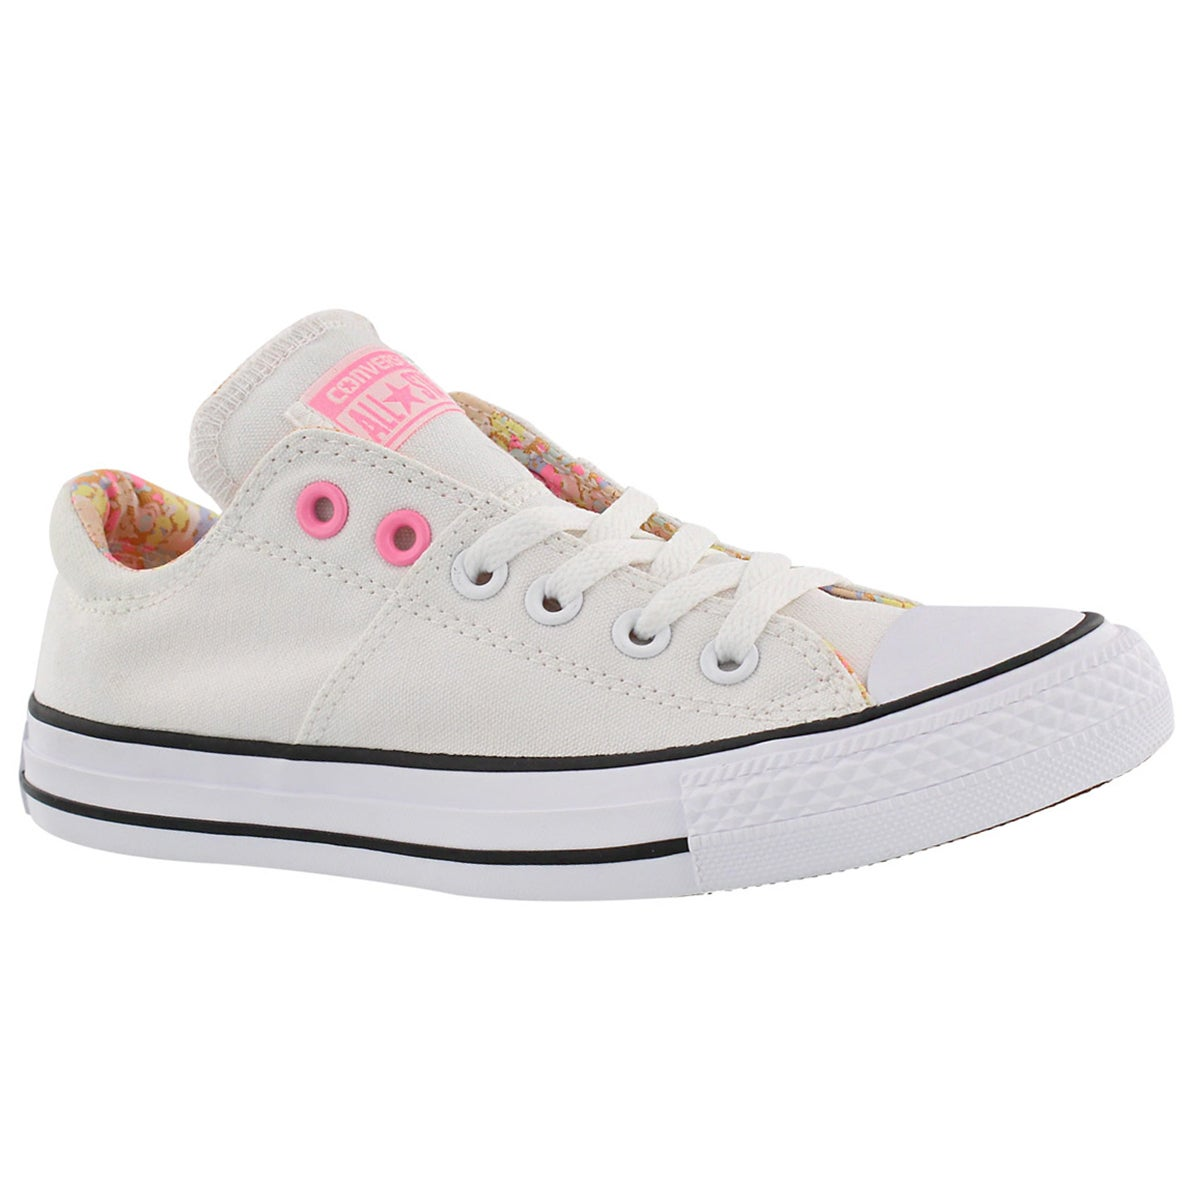 Women's CT ALL STAR MADISON wht/pnk sneakers